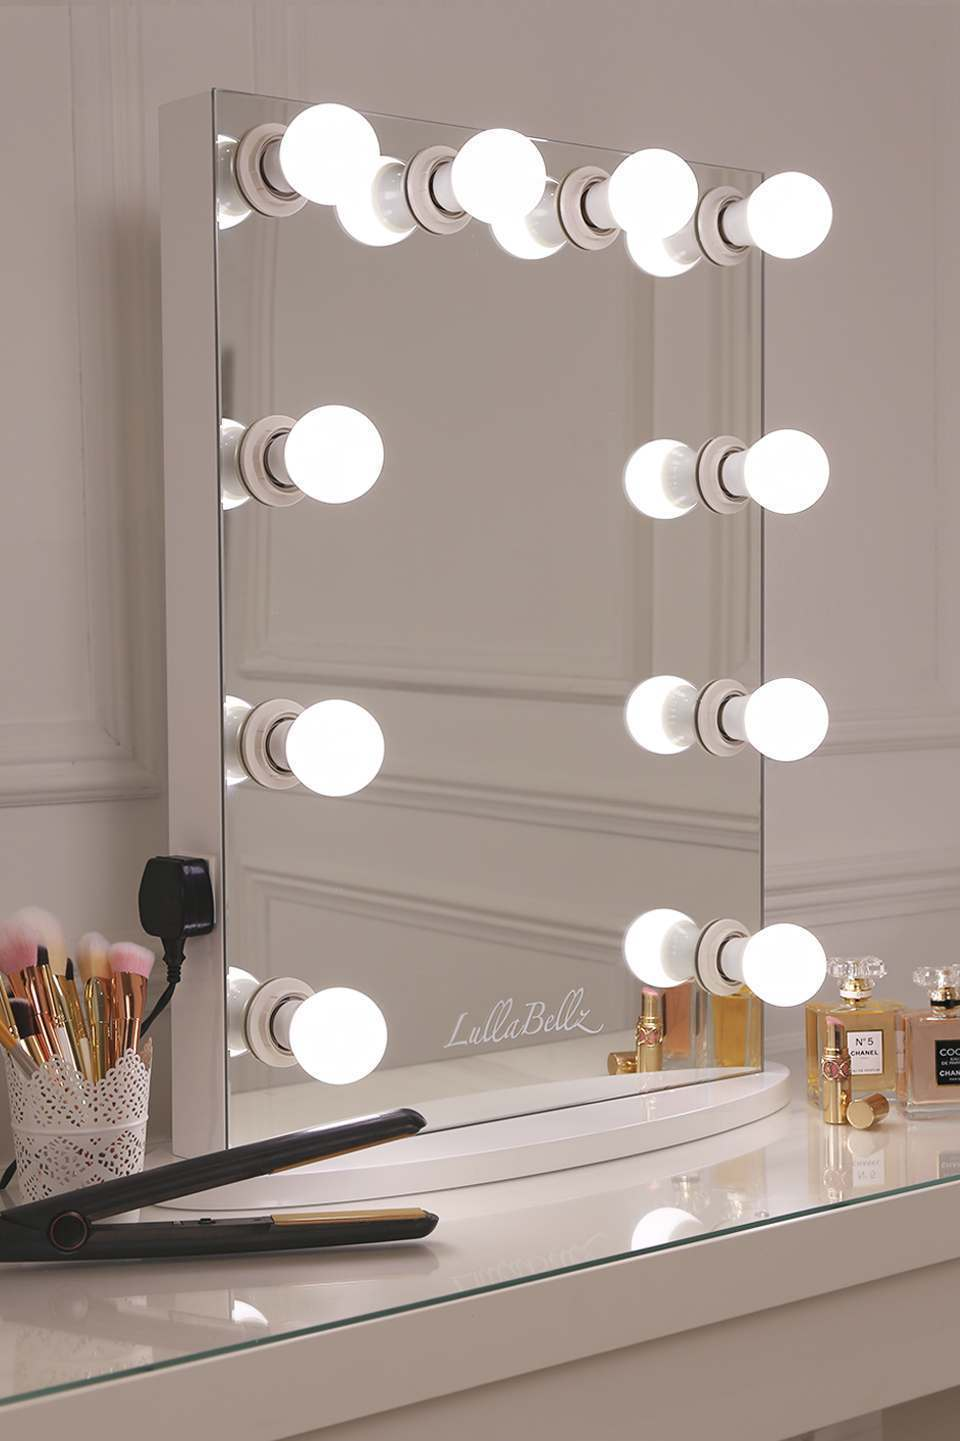 hollywood make up mirror lullabellz. Black Bedroom Furniture Sets. Home Design Ideas